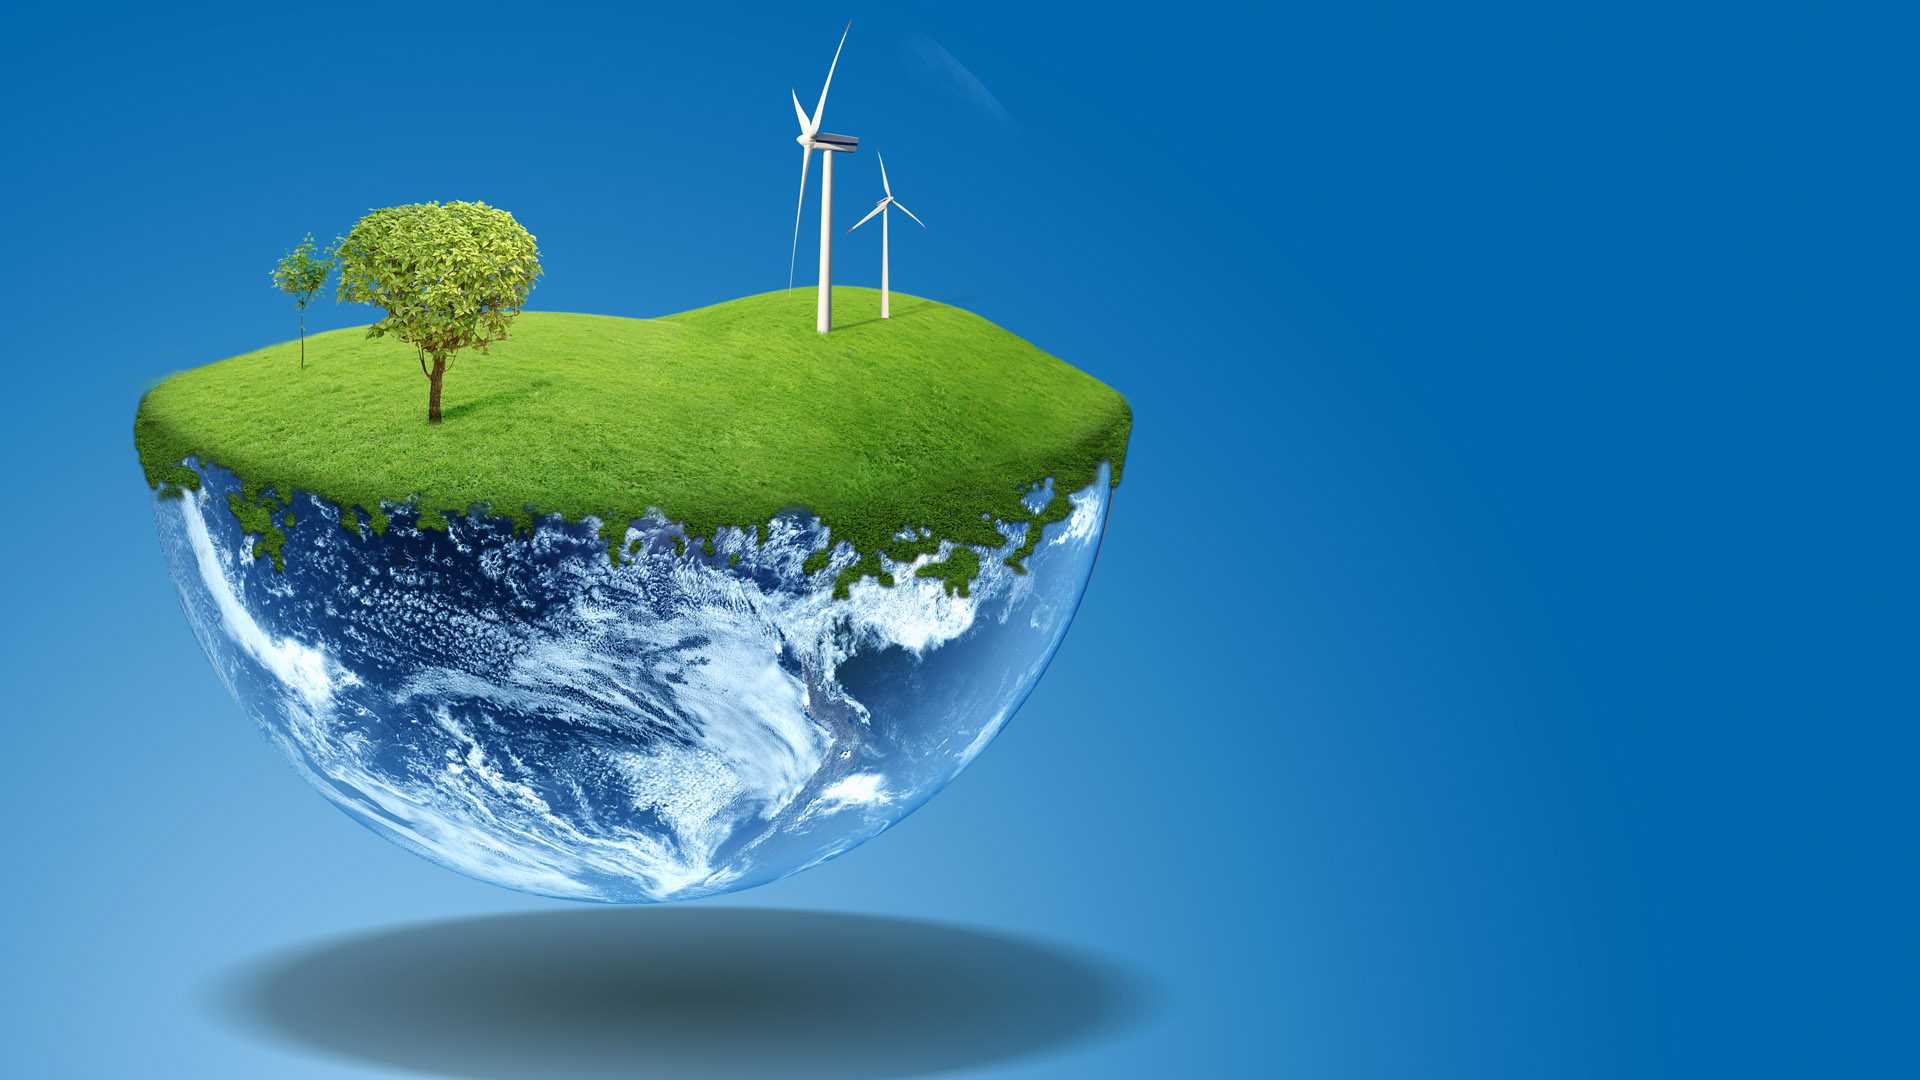 <b>Green Energy Wallpaper</b> With